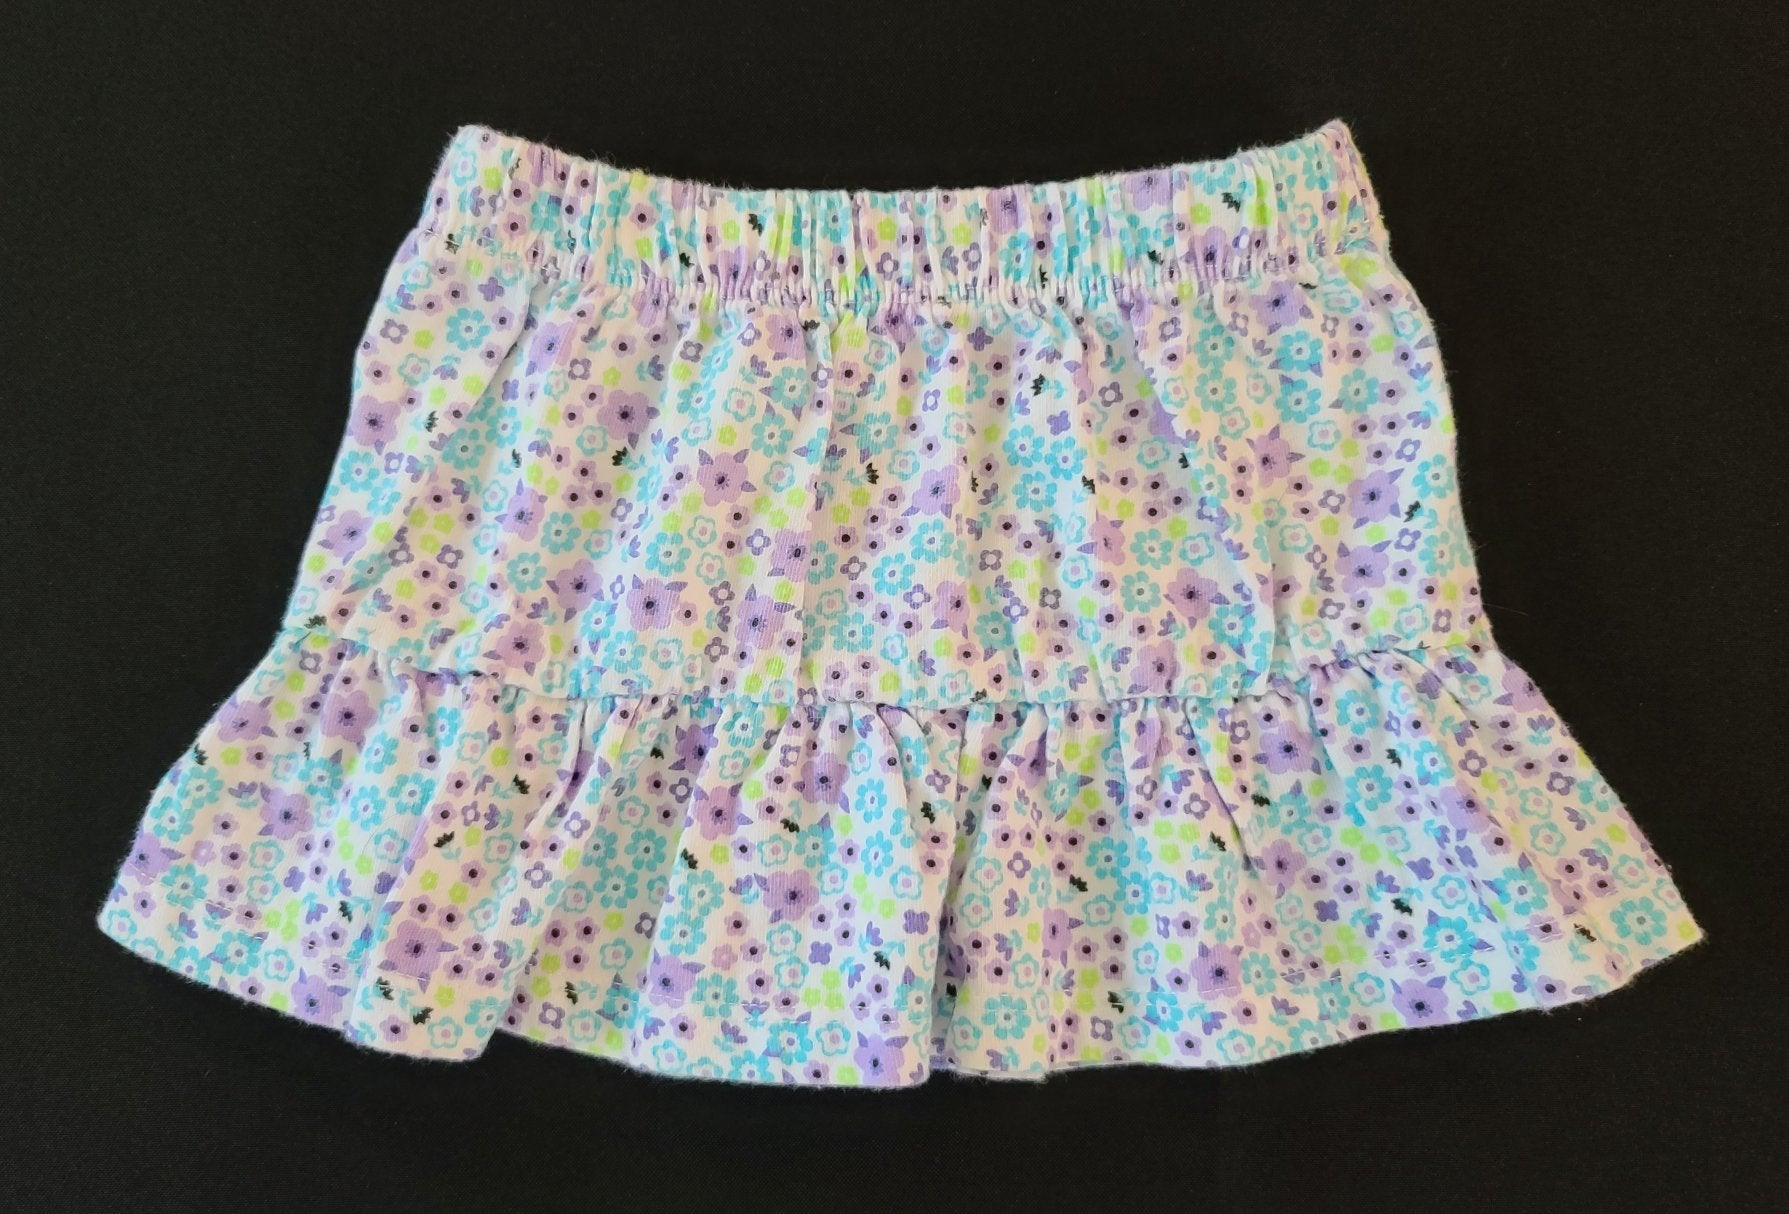 KIDS KORNER knit skirt; Girls 12m